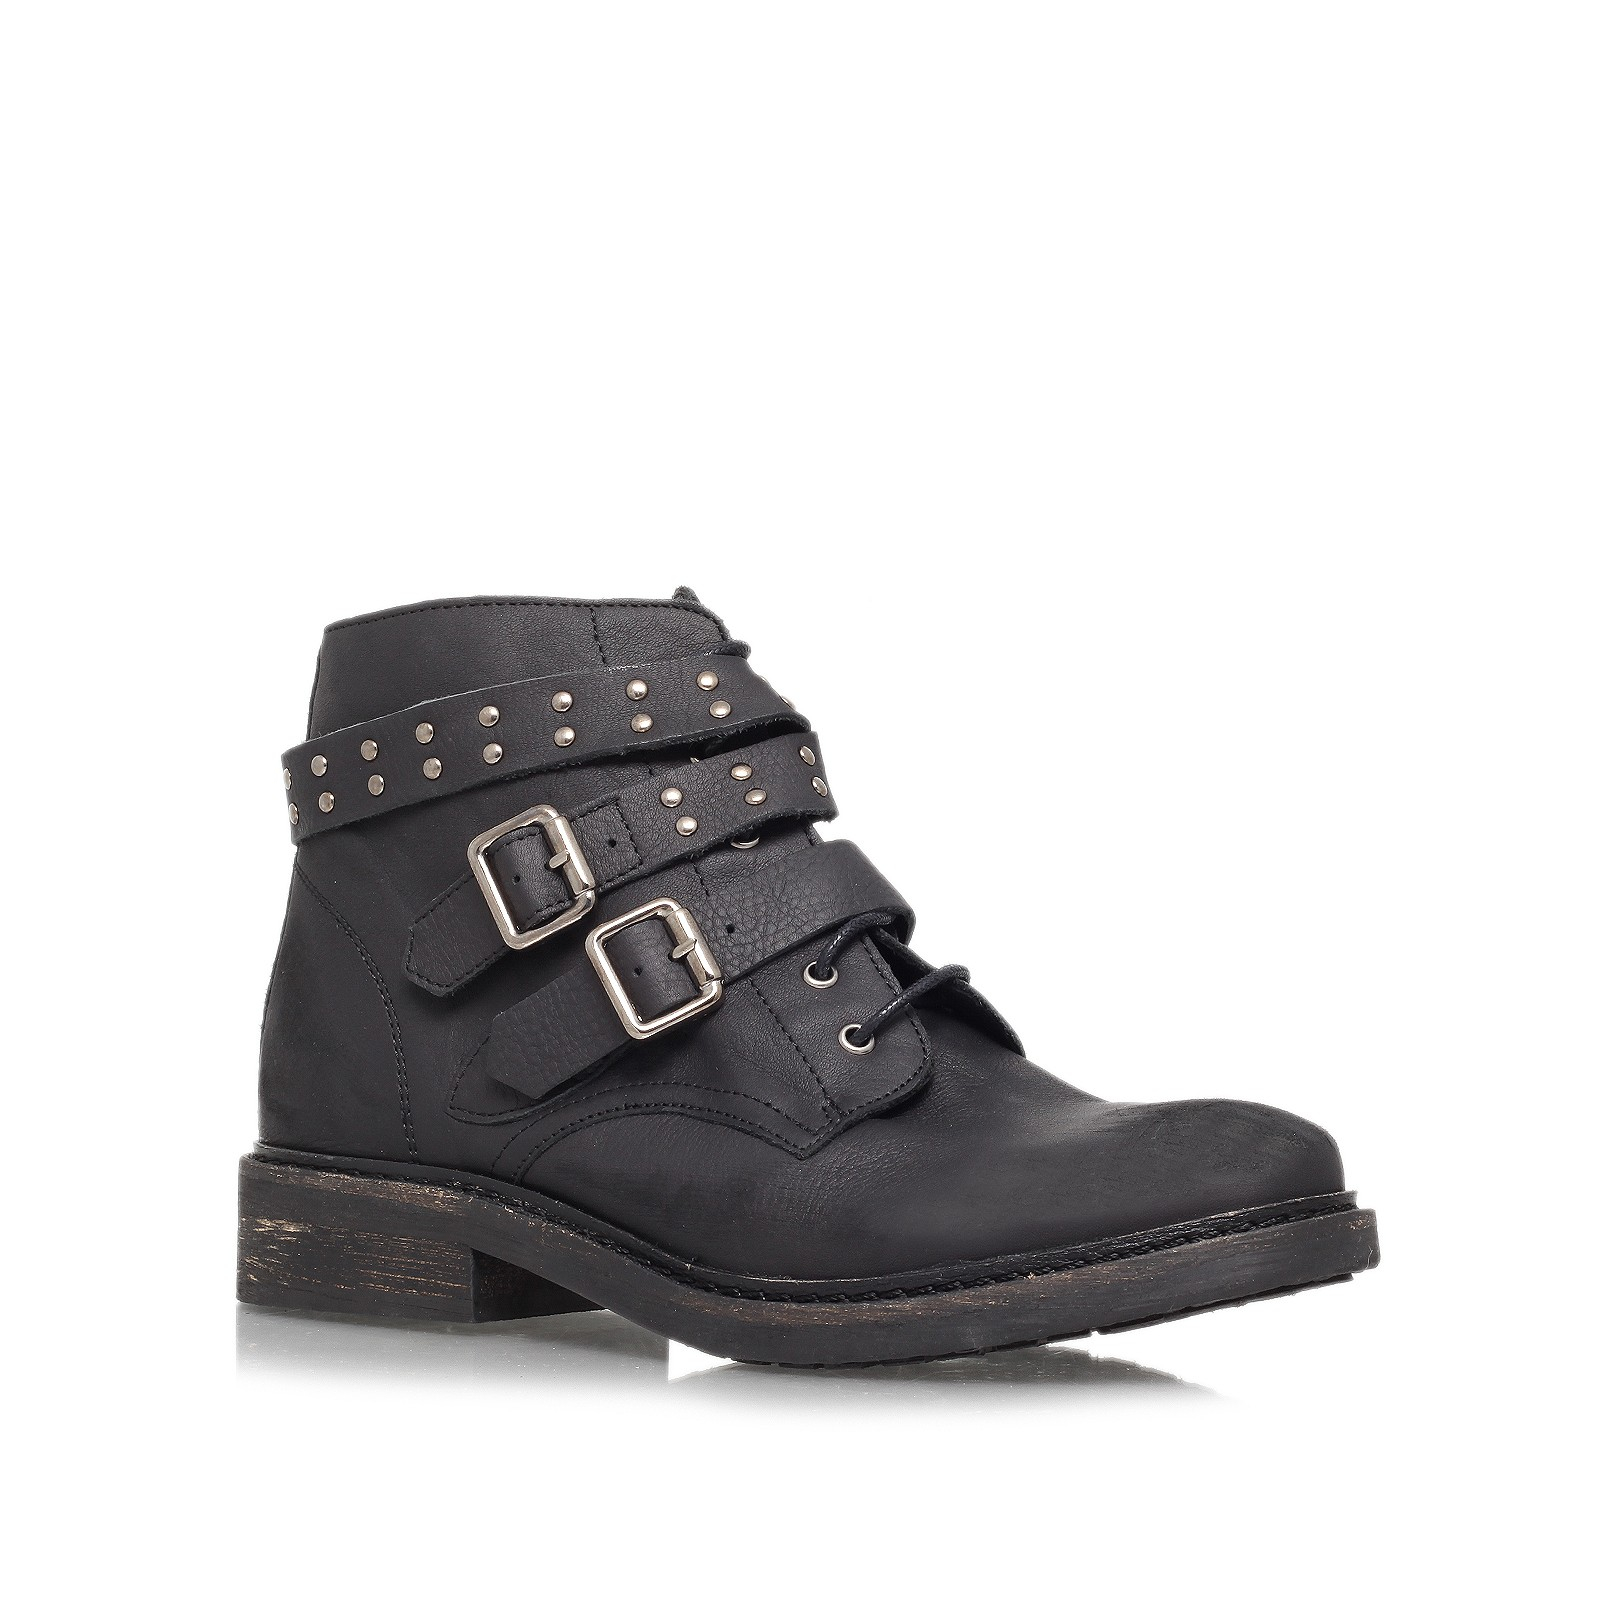 Lyst Kg By Kurt Geiger Search Lace Up Boots In Black